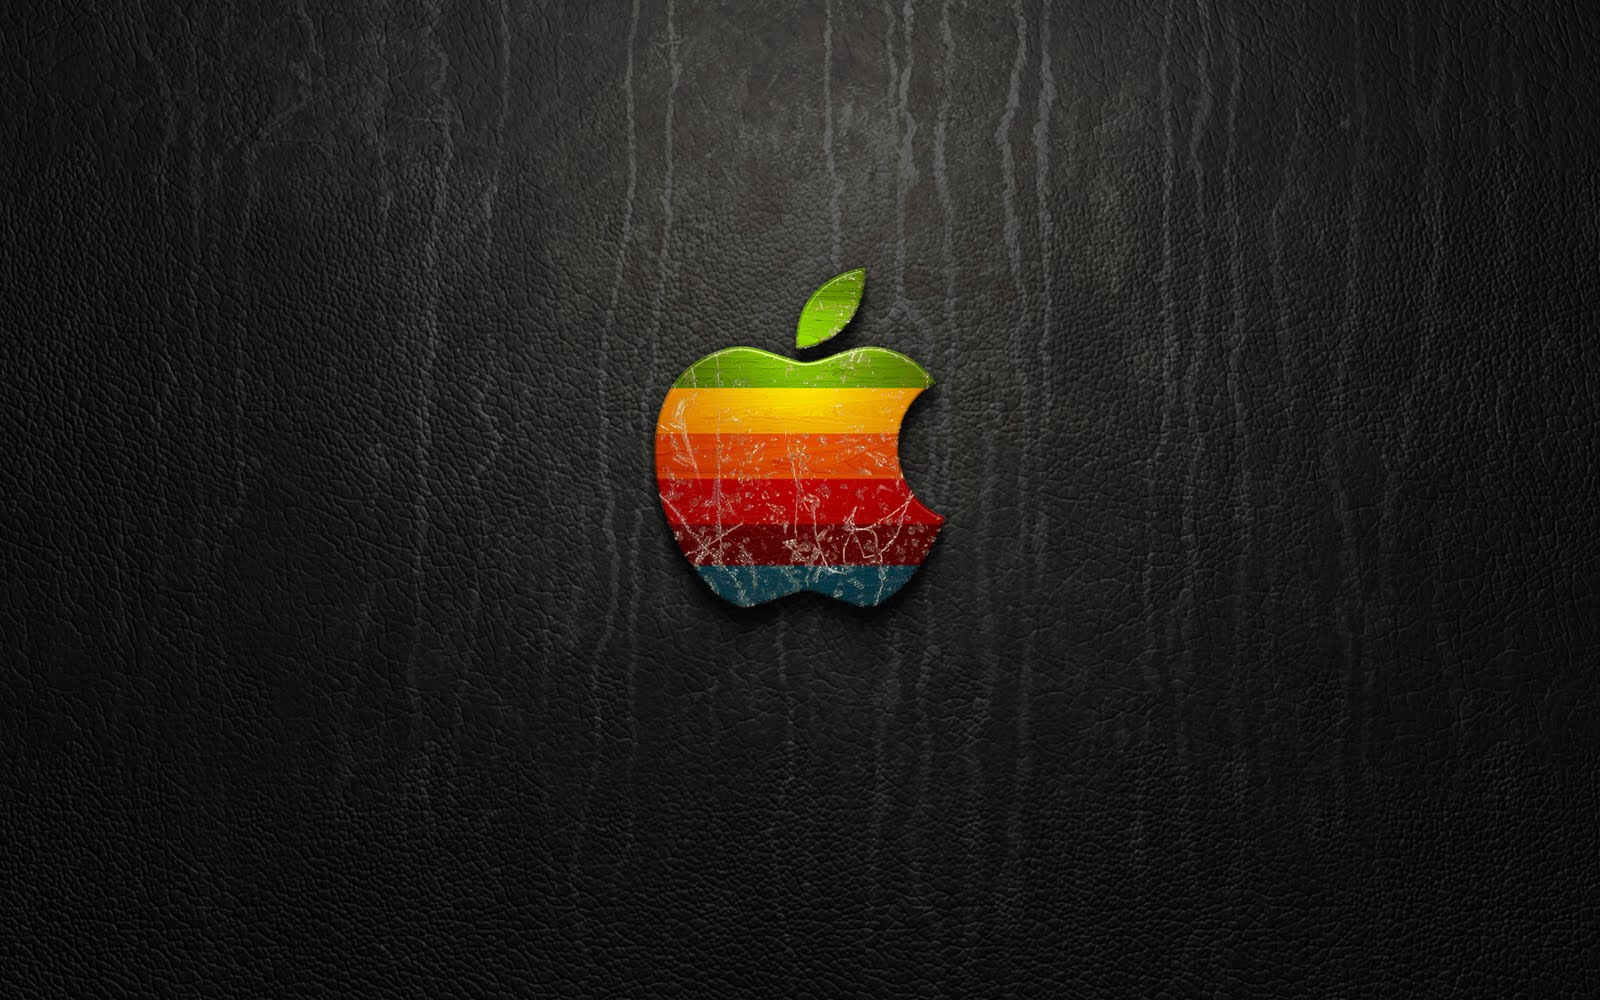 The Best Apple Logo HD